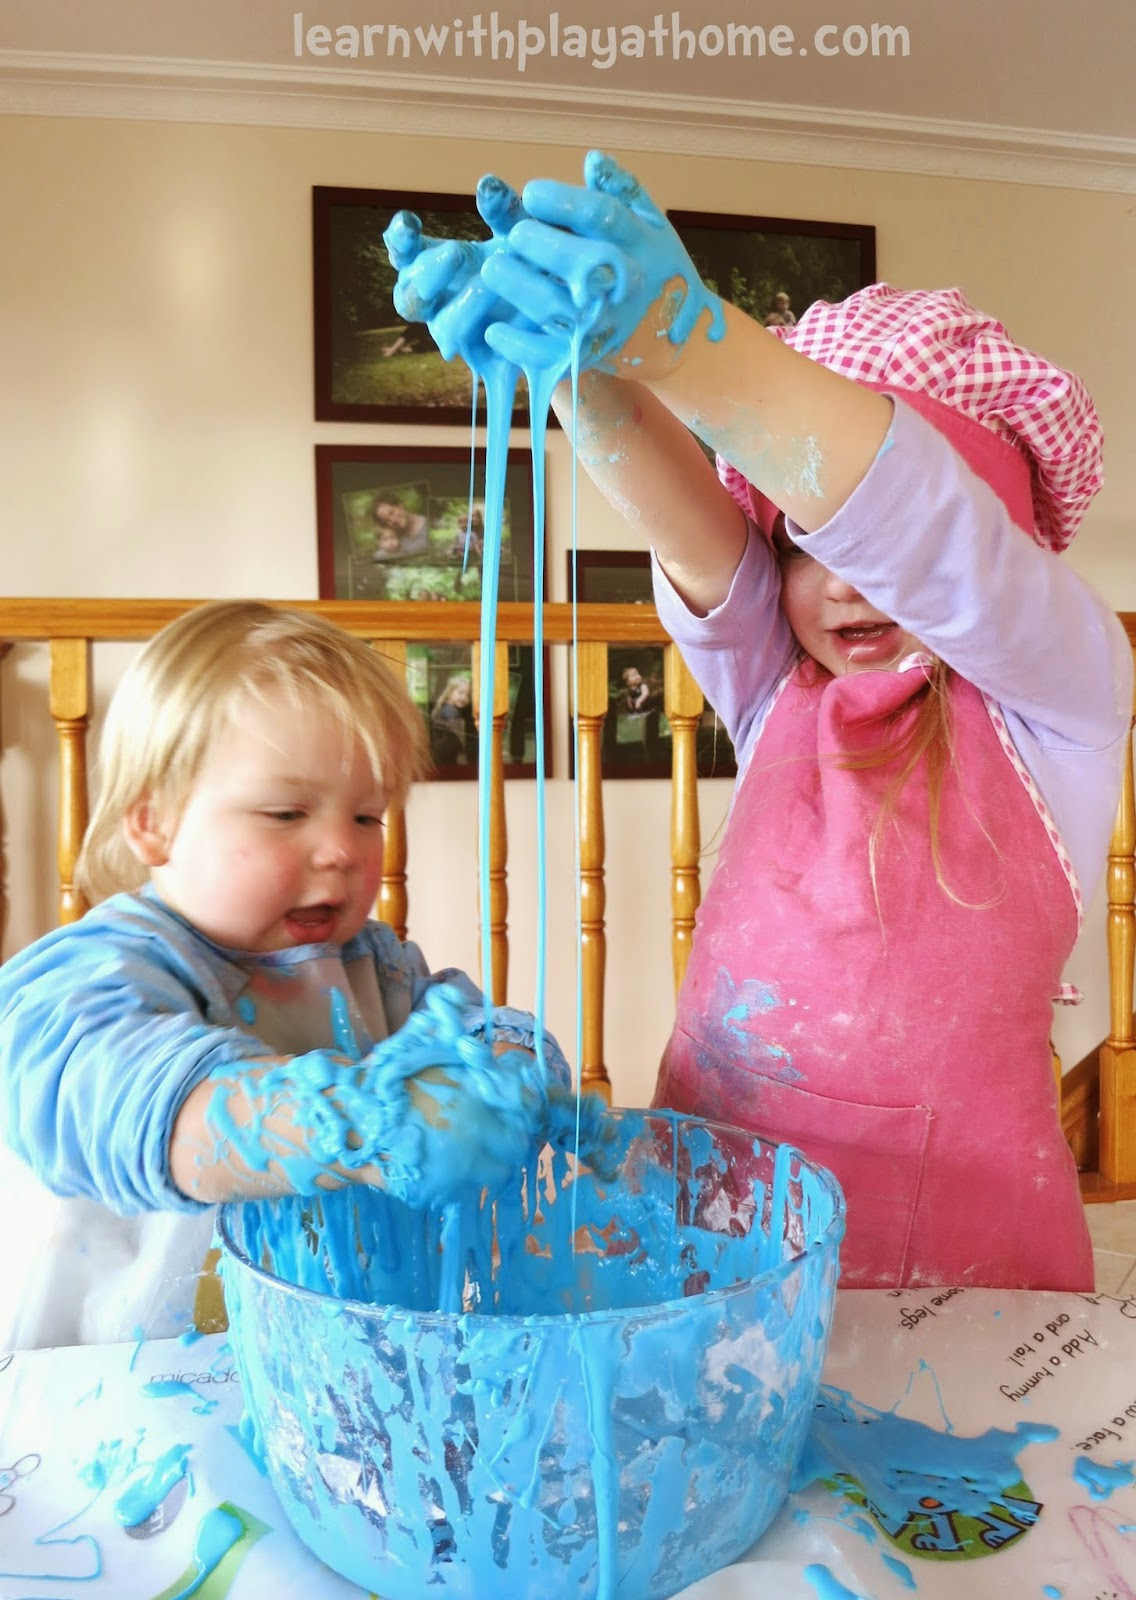 how to make slime with dishwashing liquid and flour